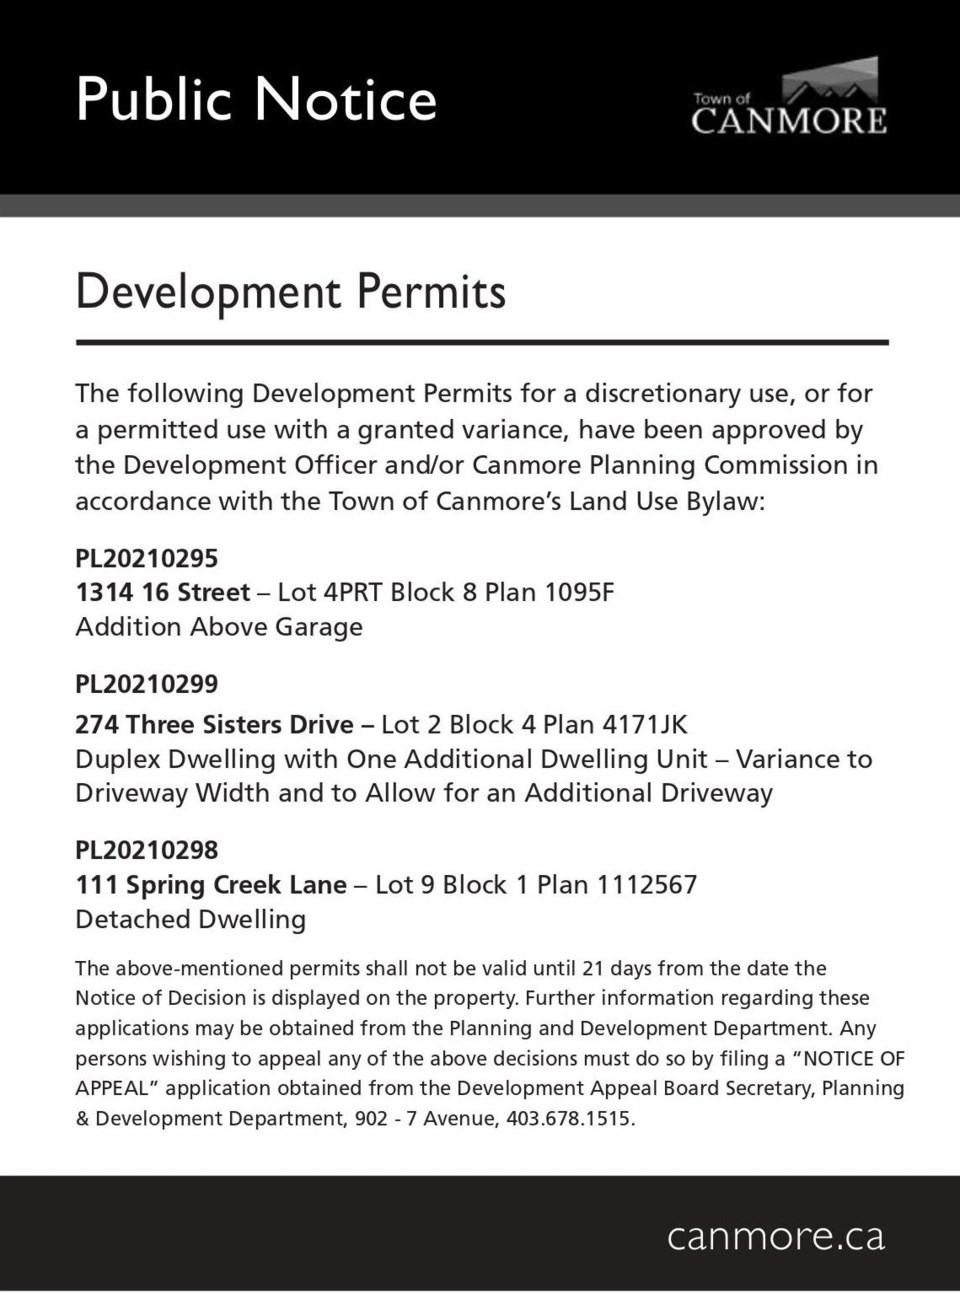 PUBLIC NOTICE – Town of Canmore – development permits – Sept. 9, 2021